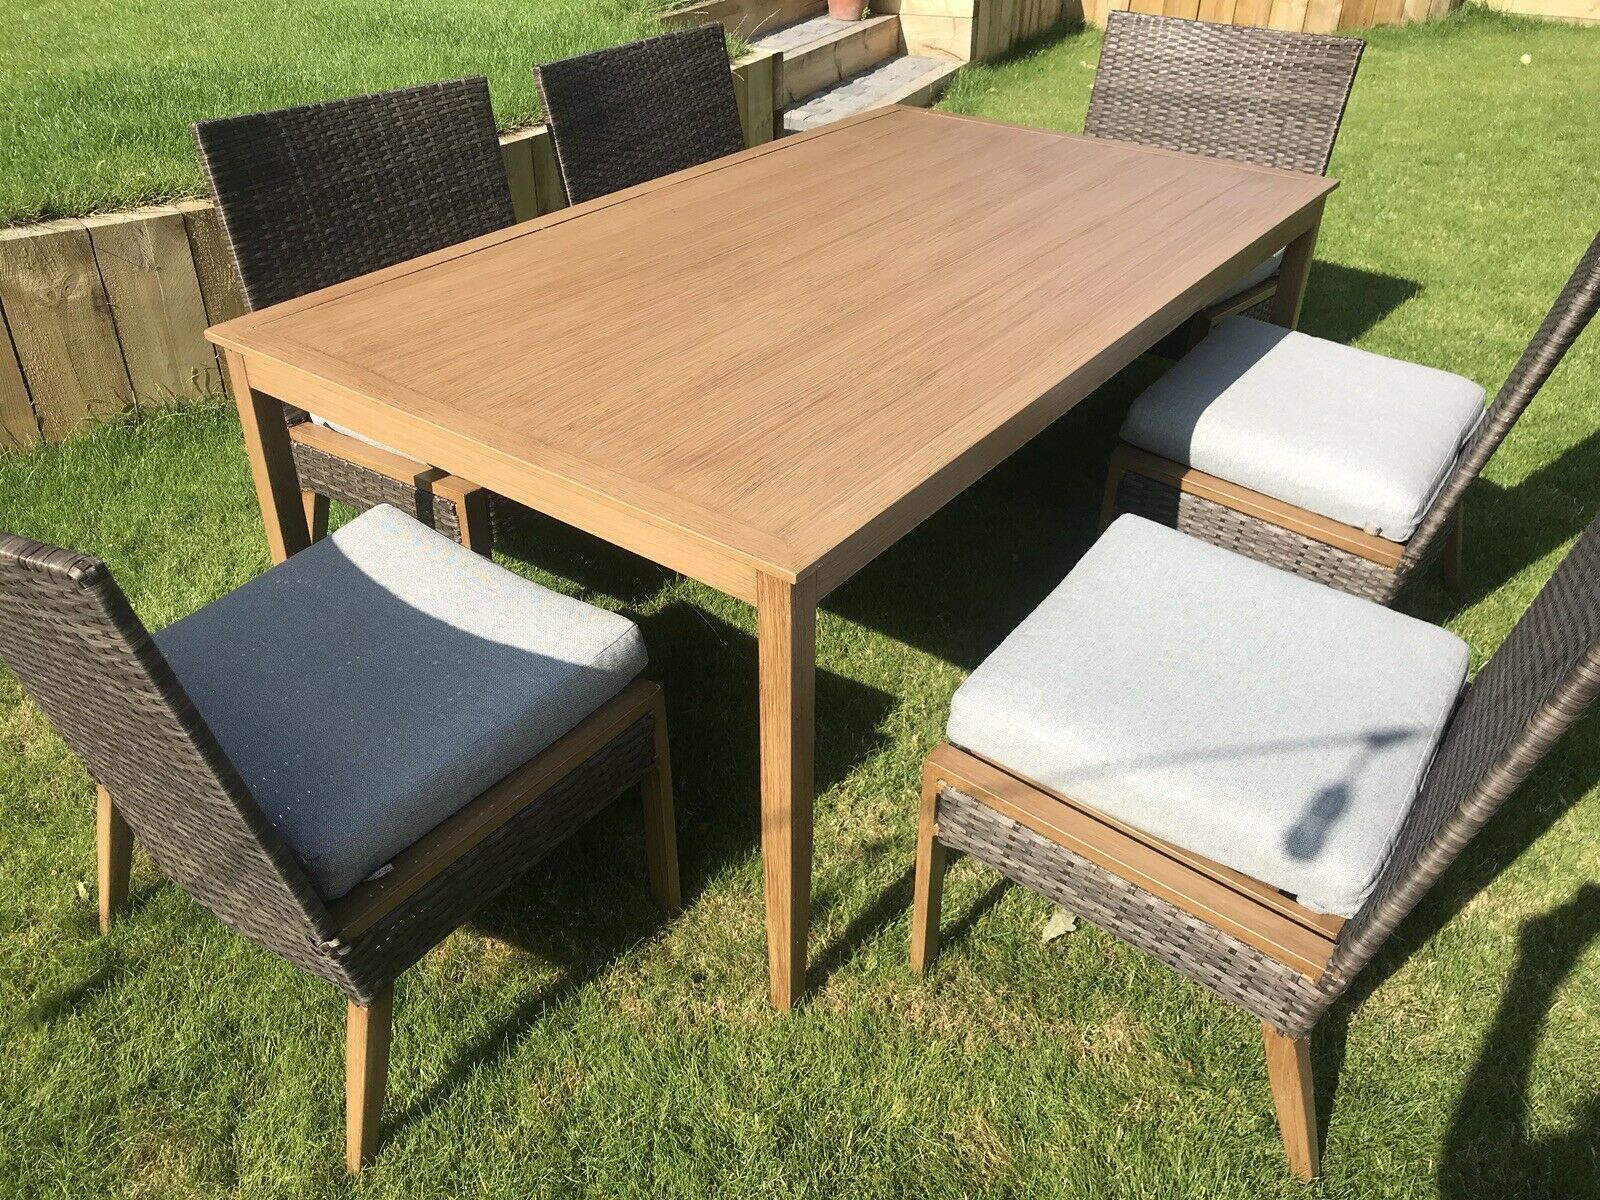 6 Seater Patio Dining Set Outdoor Garden Furniture Table And Chairs With Cushion throughout measurements 1600 X 1200